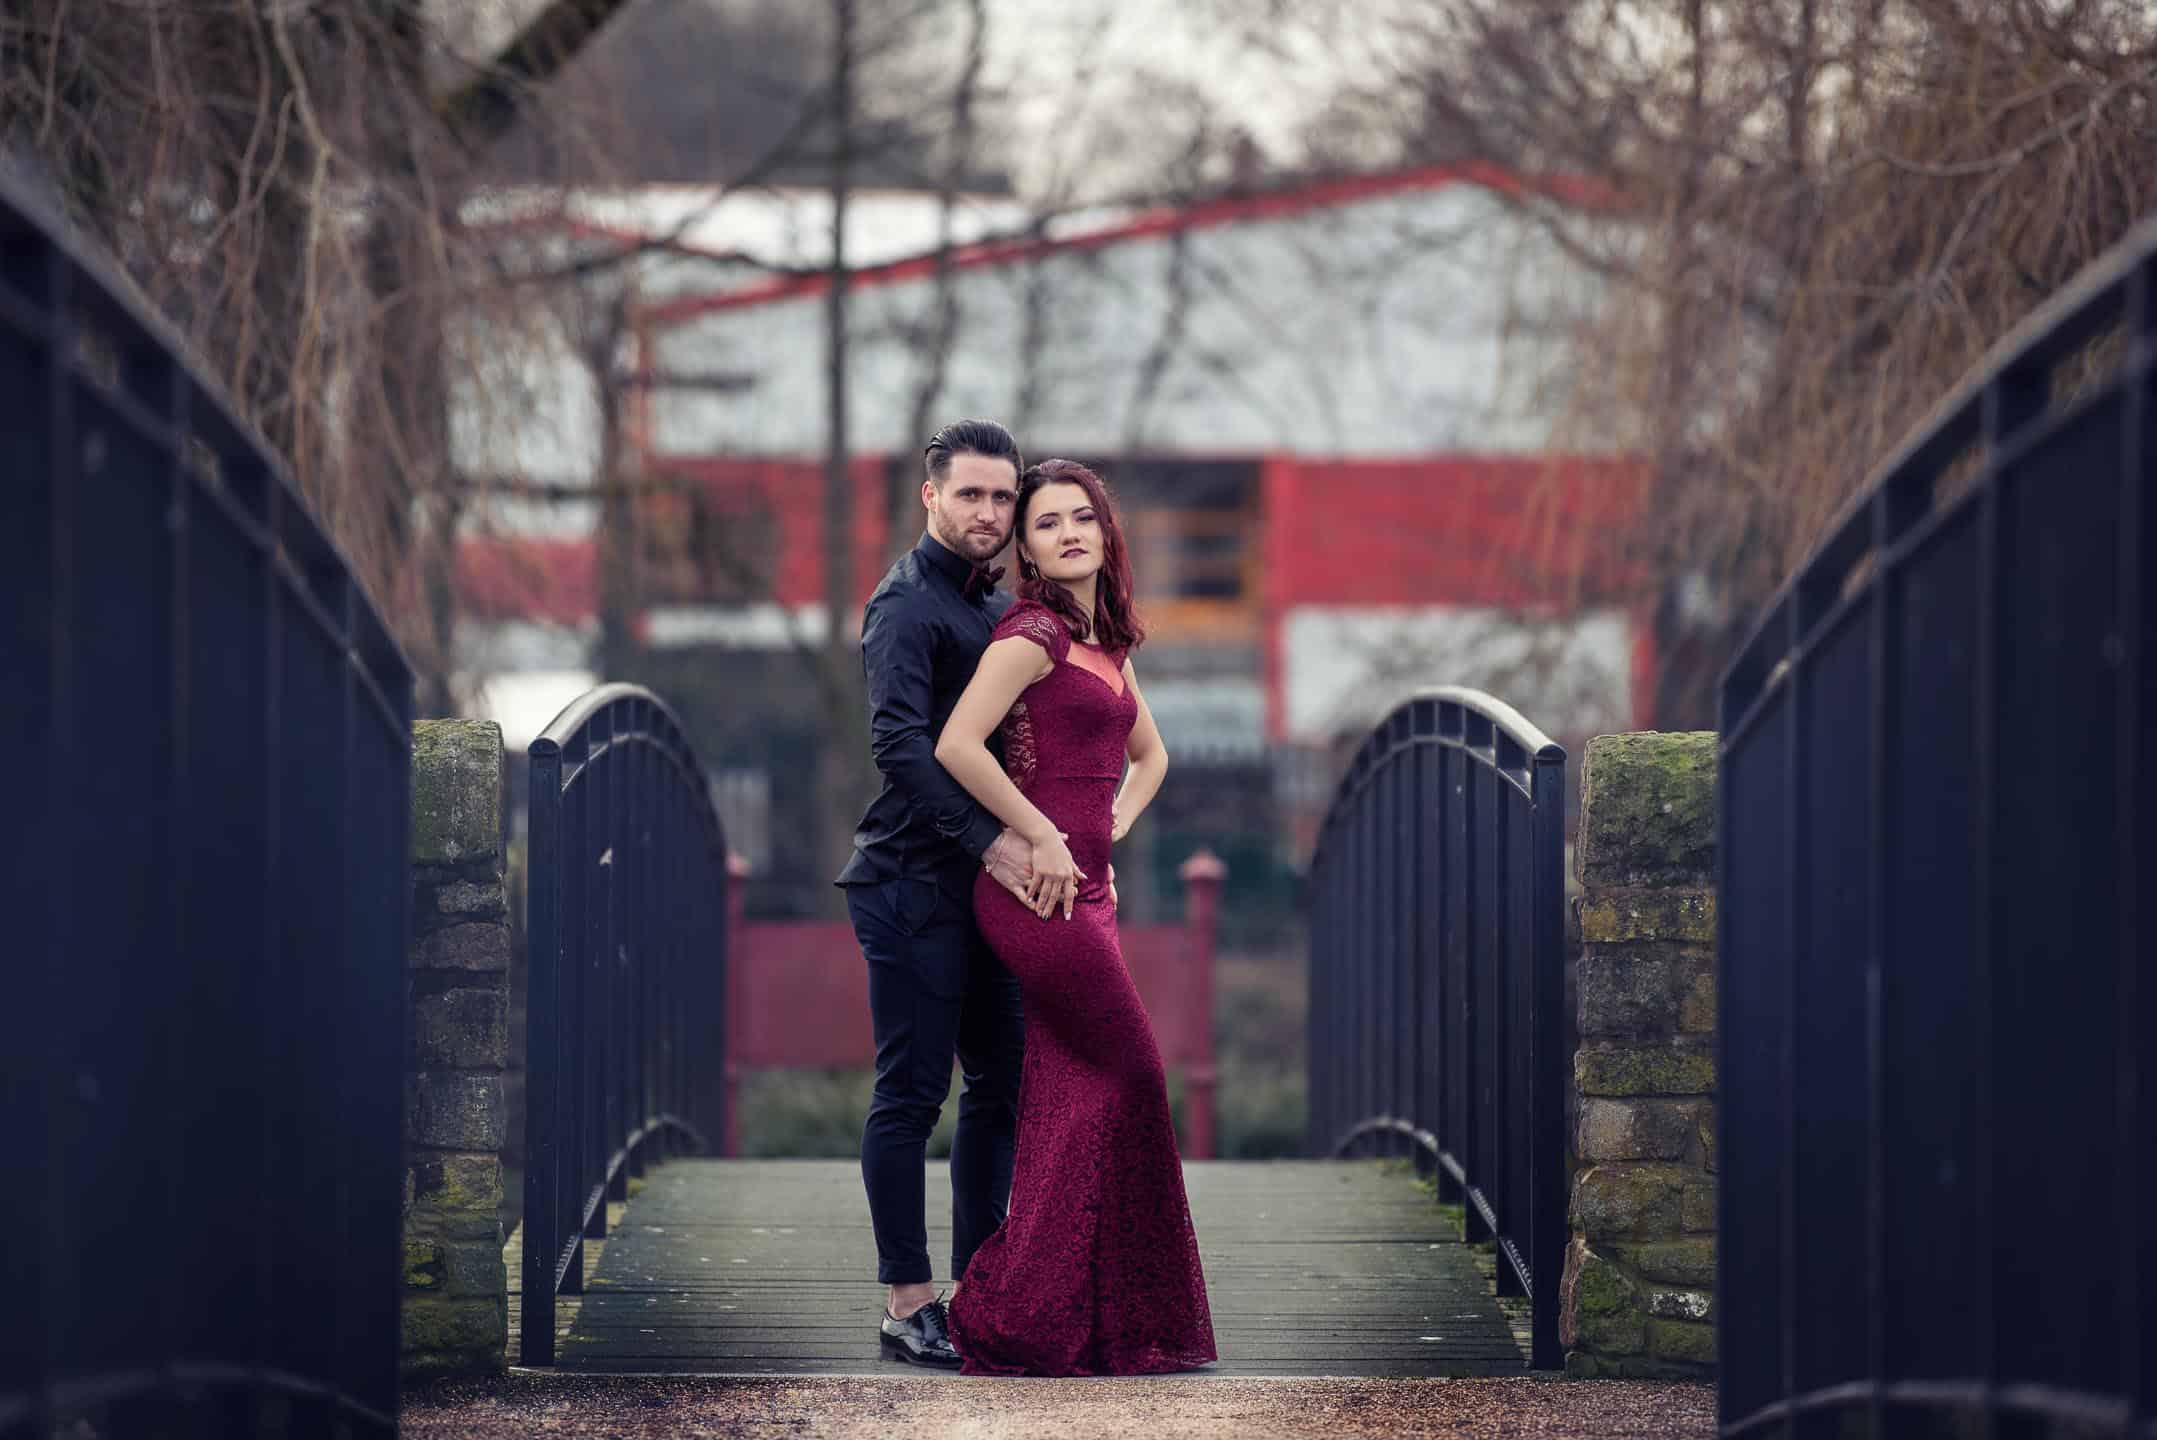 Manchester Wedding Photography by Alin Turcanu engagement day